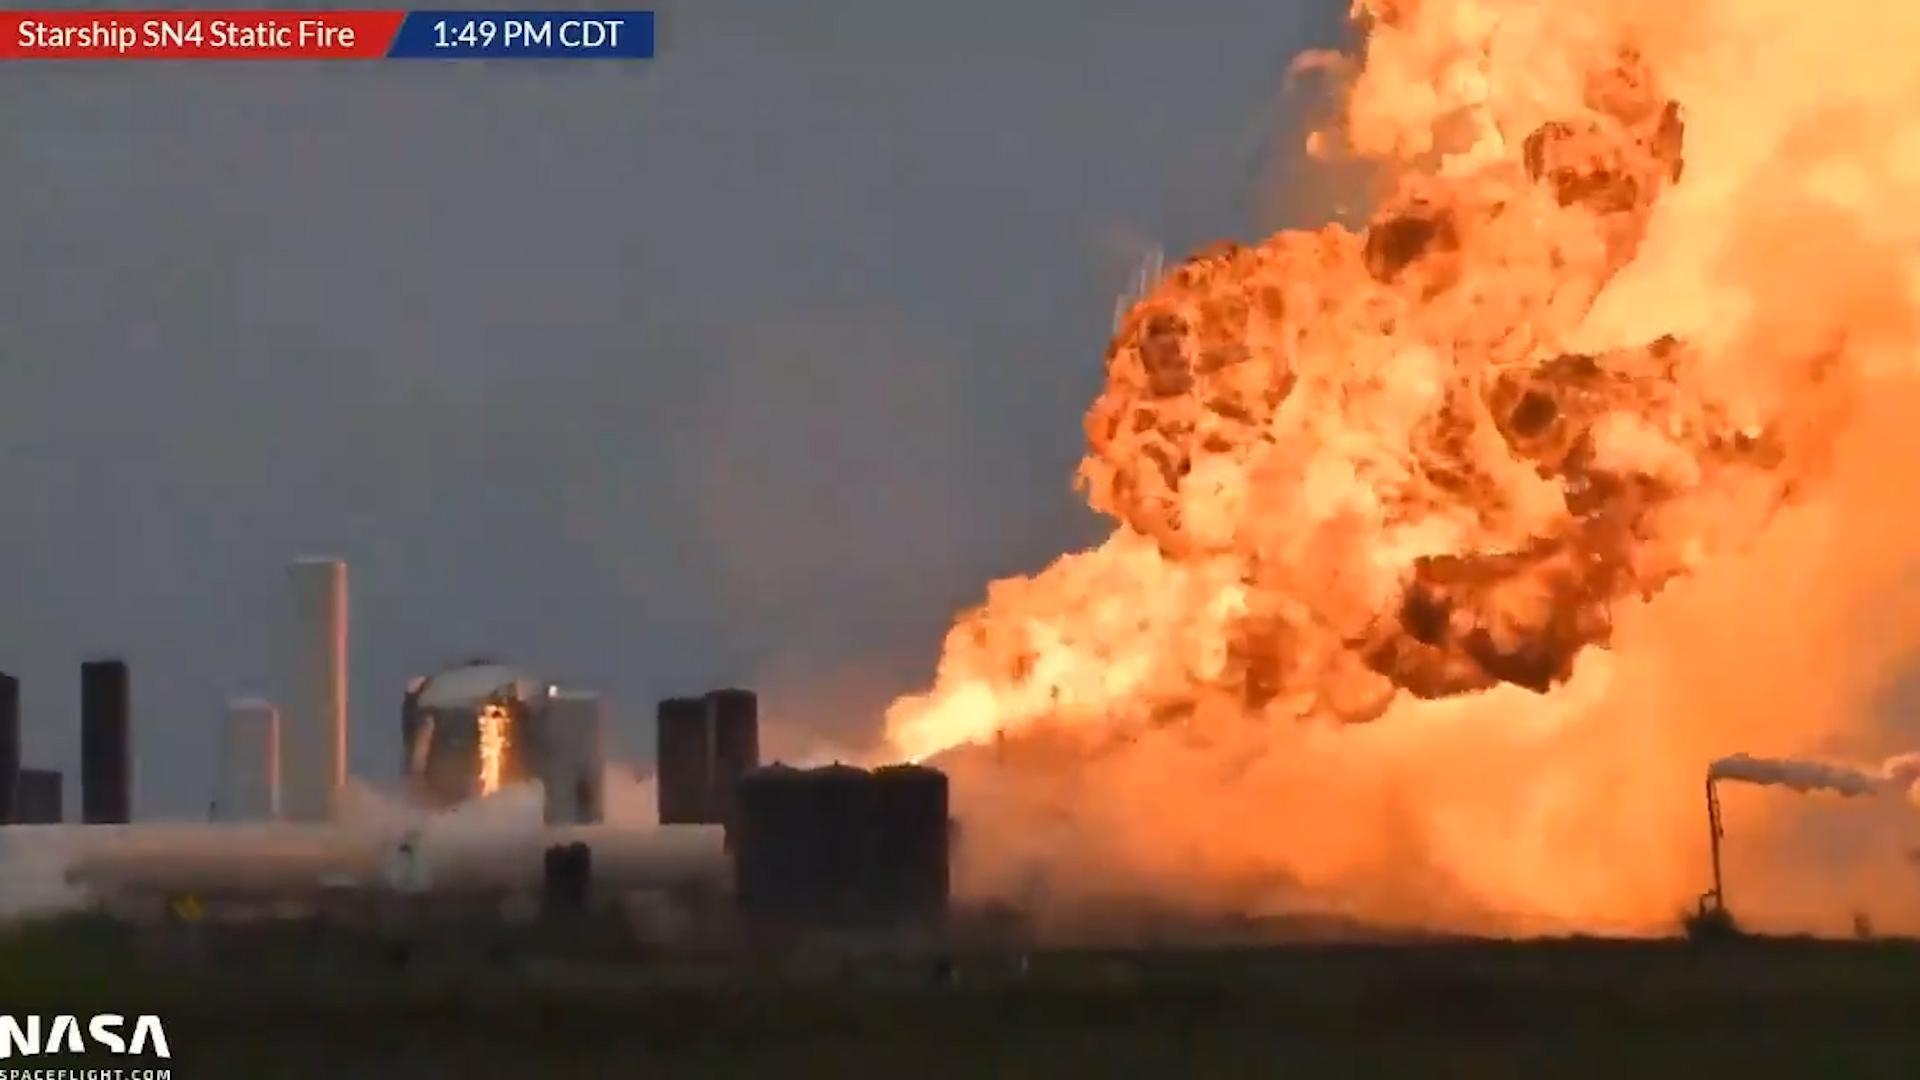 SpaceX Starship SN4 prototype explodes after engine test in Texas